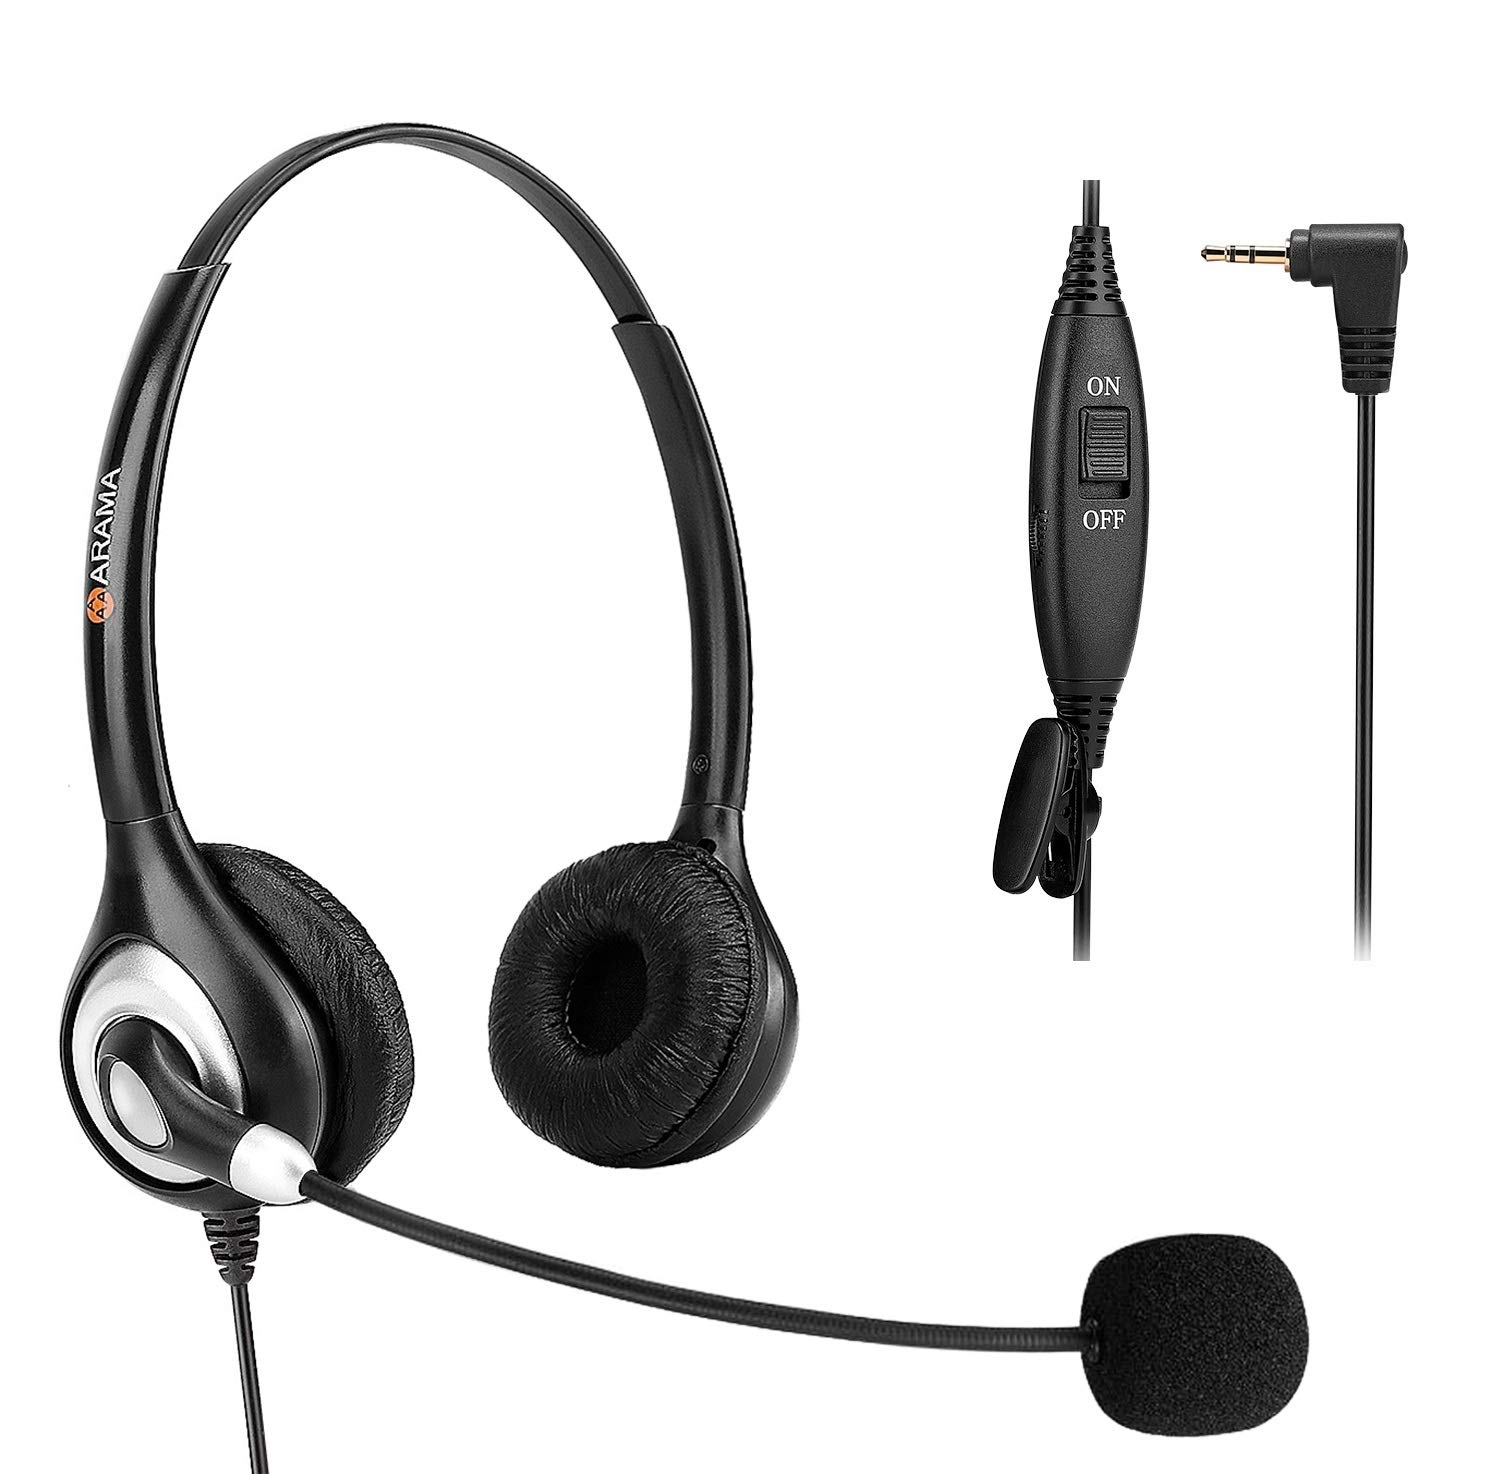 Amazon Com Phone Headset 2 5mm Telephone Headset With Noise Canceling Mic For At T Panasonic Vtech Uniden Cisco Grandstream Polycom And Cordless Dect Phones Electronics